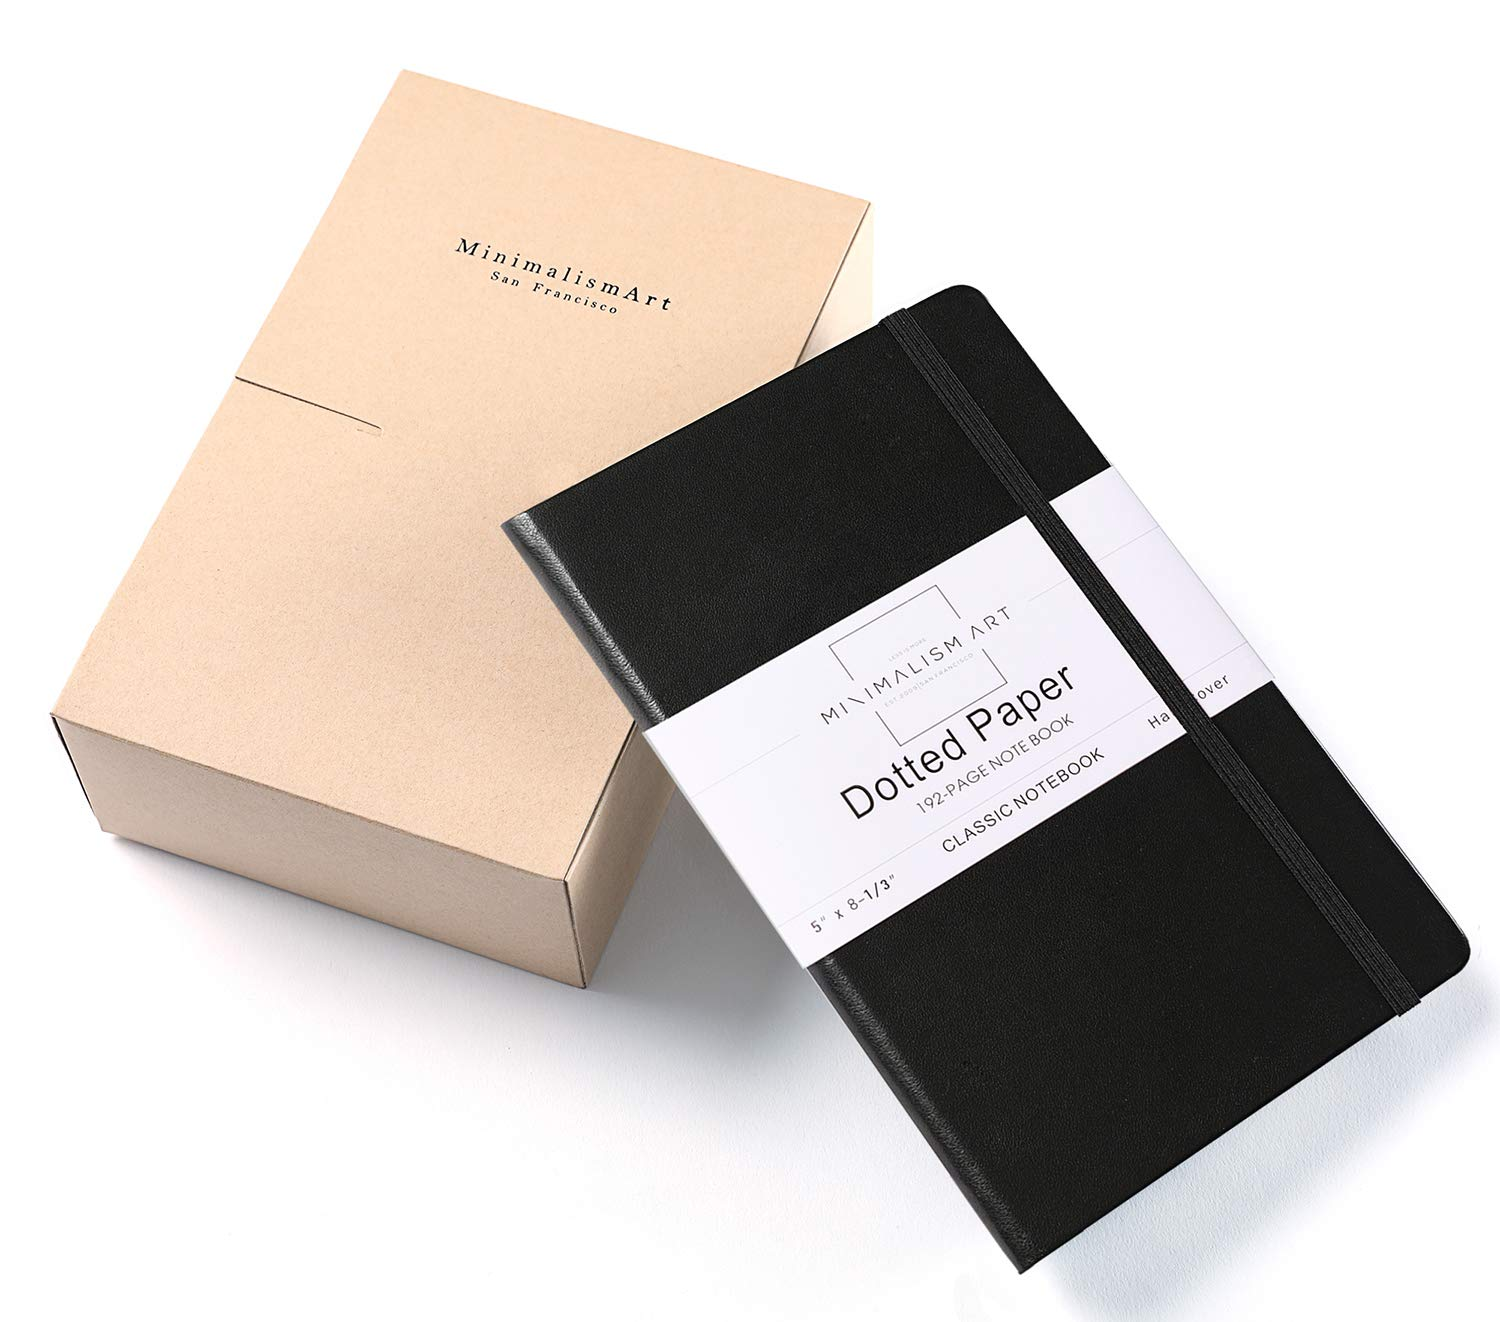 Minimalism Art, 3-Pack Classic Notebook Journal, A5 Size 5 X 8.3 inches, Black, Dotted Grid Page, 192 Pages, Hard Cover, Fine PU Leather, Inner Pocket, Quality Paper-100gsm, Designed in San Francisco